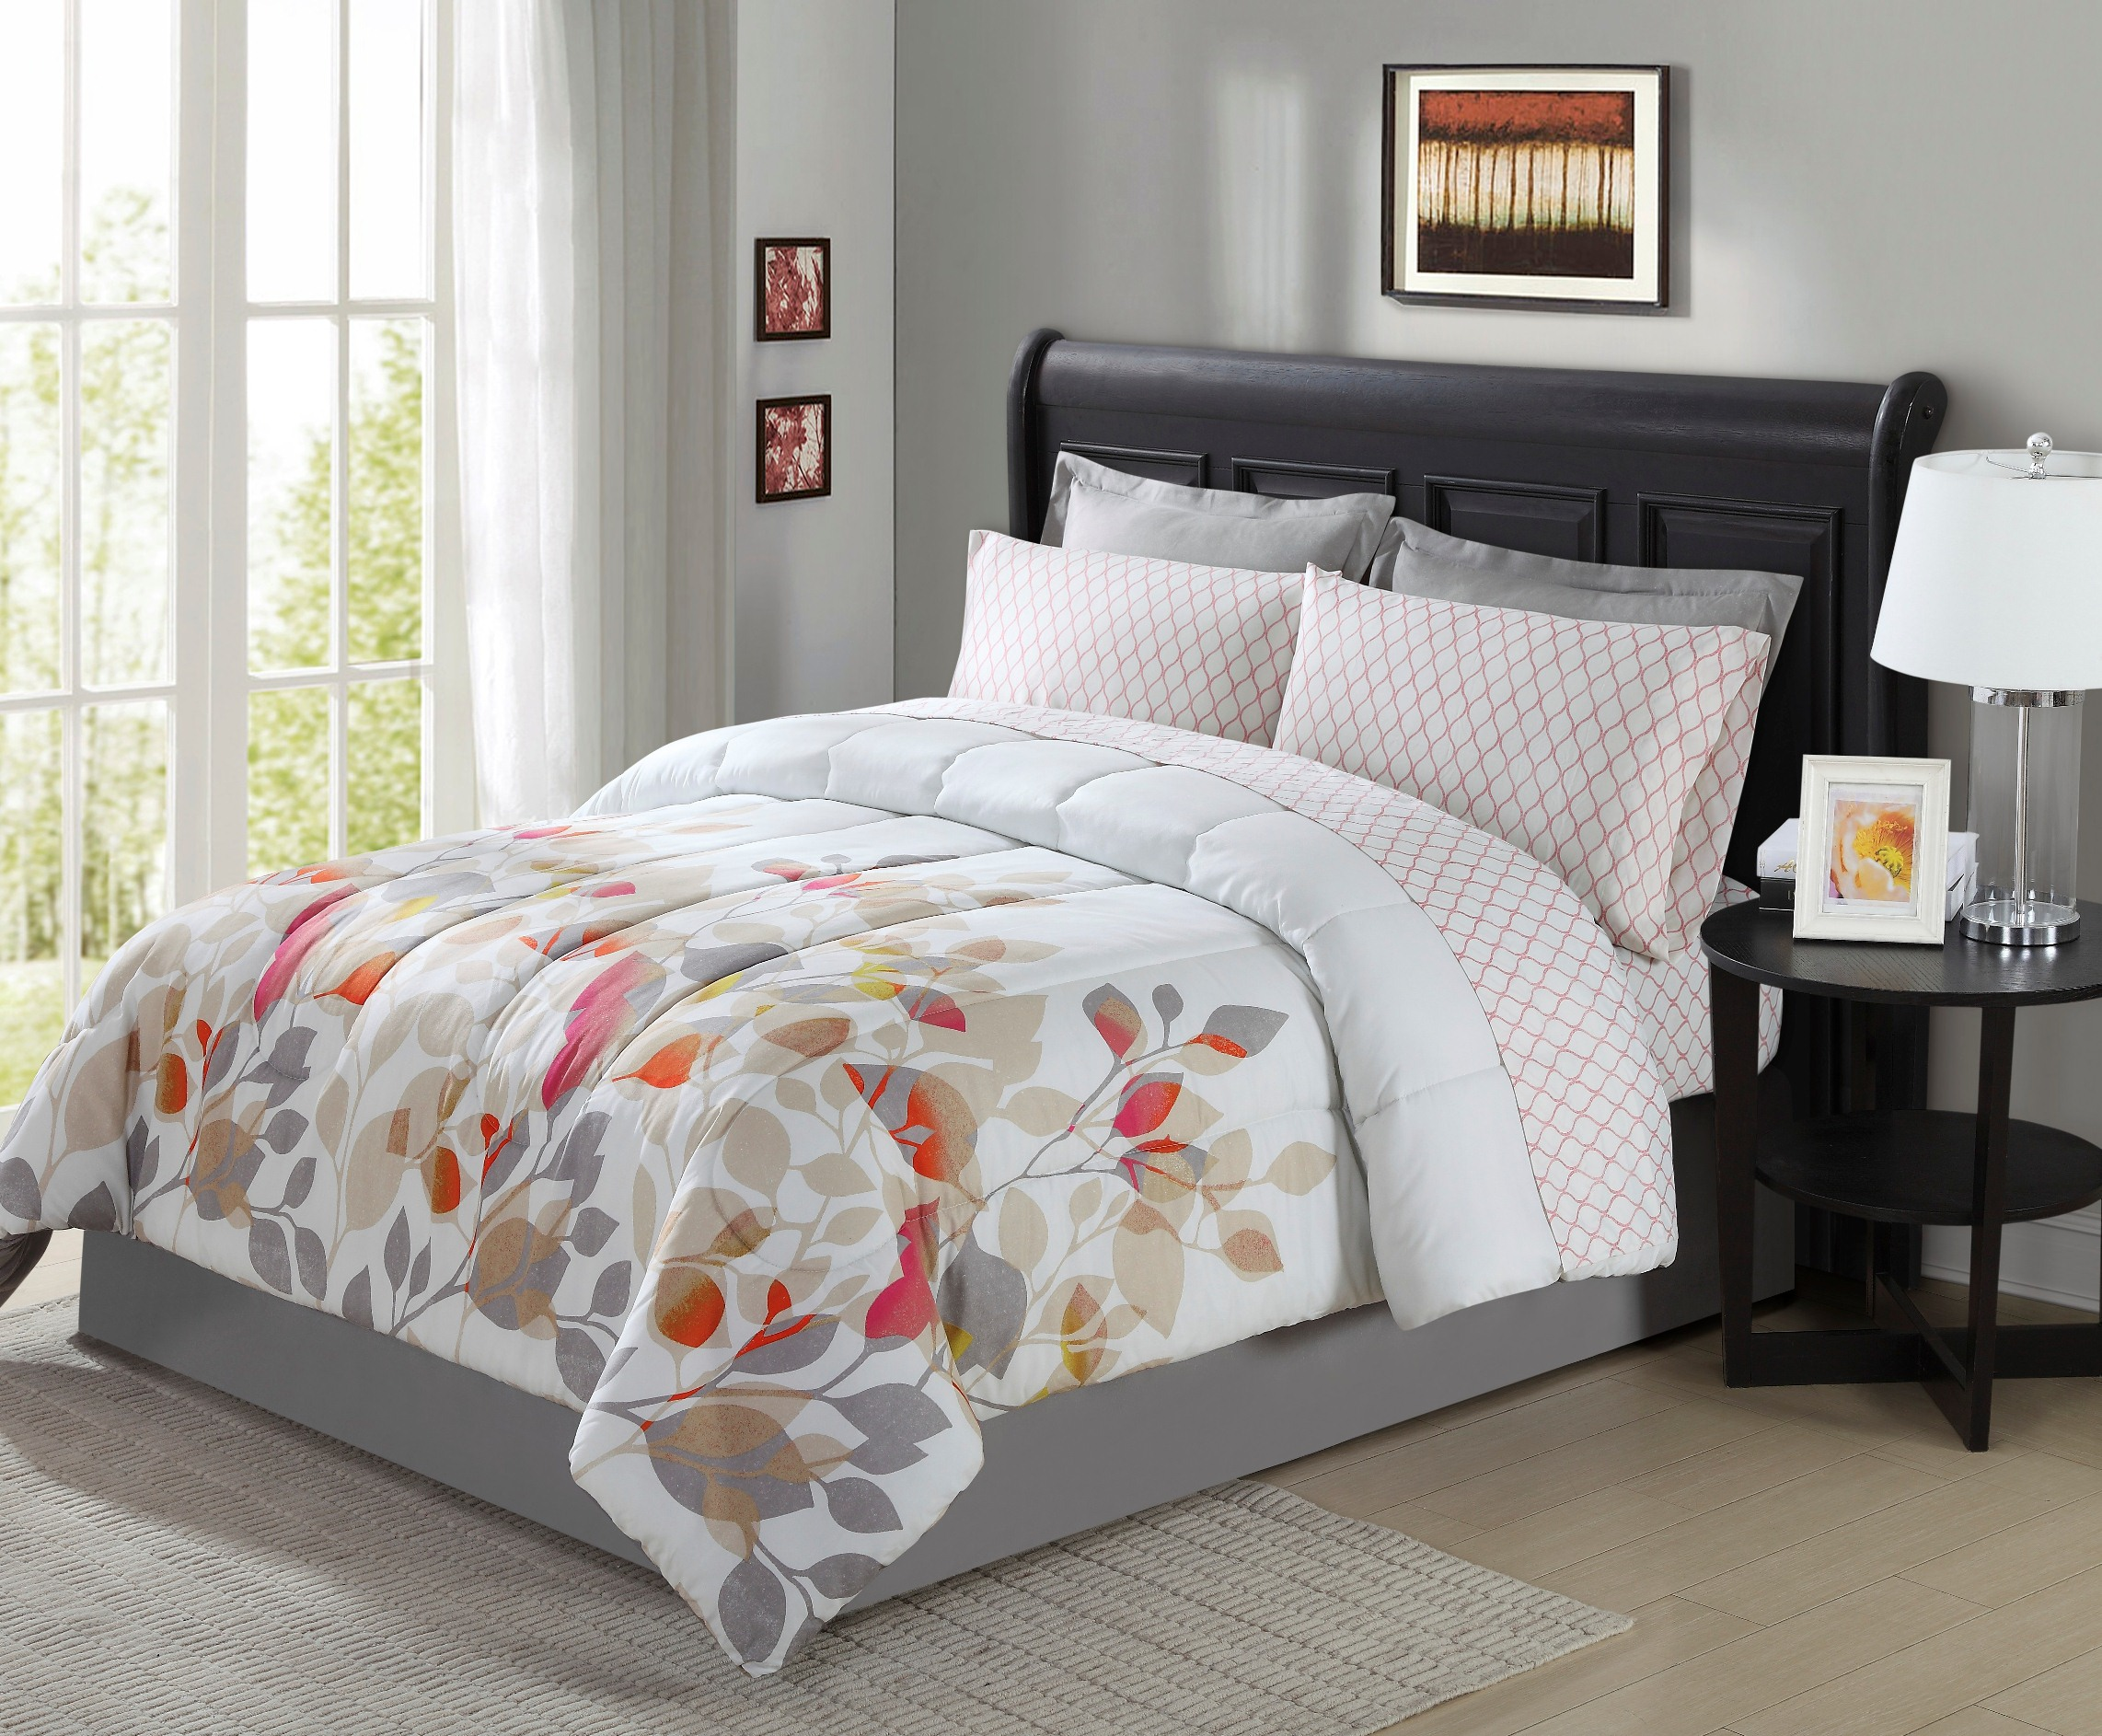 Colormate Bree Complete Bedding Set White Floral Bedding Sets